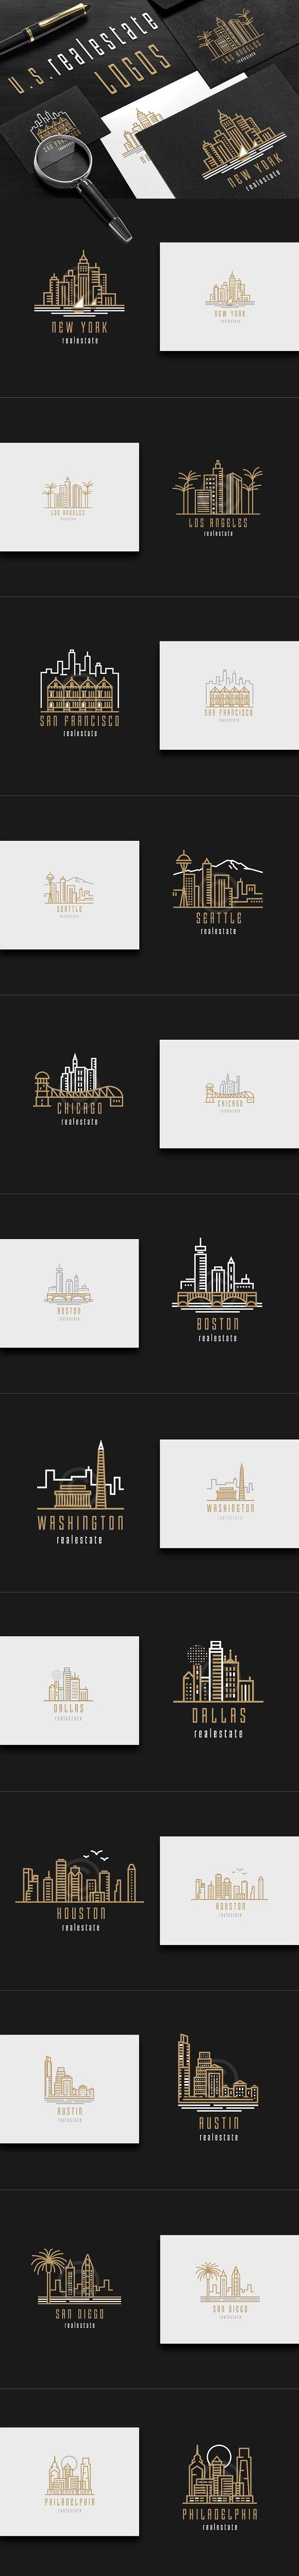 U.S. real estate logos by Polar Vectors on @Graphicsauthor